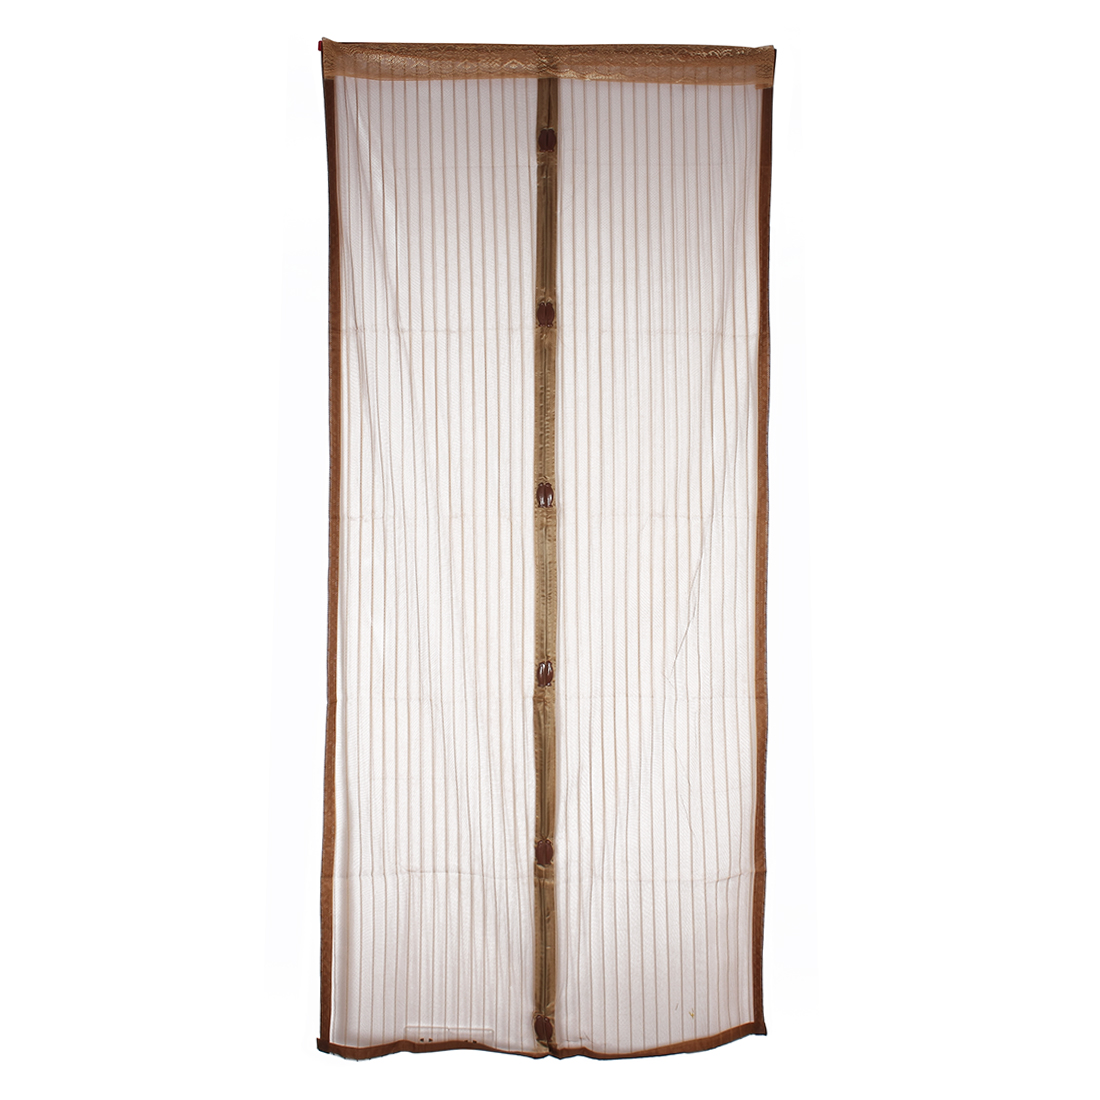 Snap Screen Door Easy Fit Magnetic Insect Fly Curtain Mozzy Netting Brown